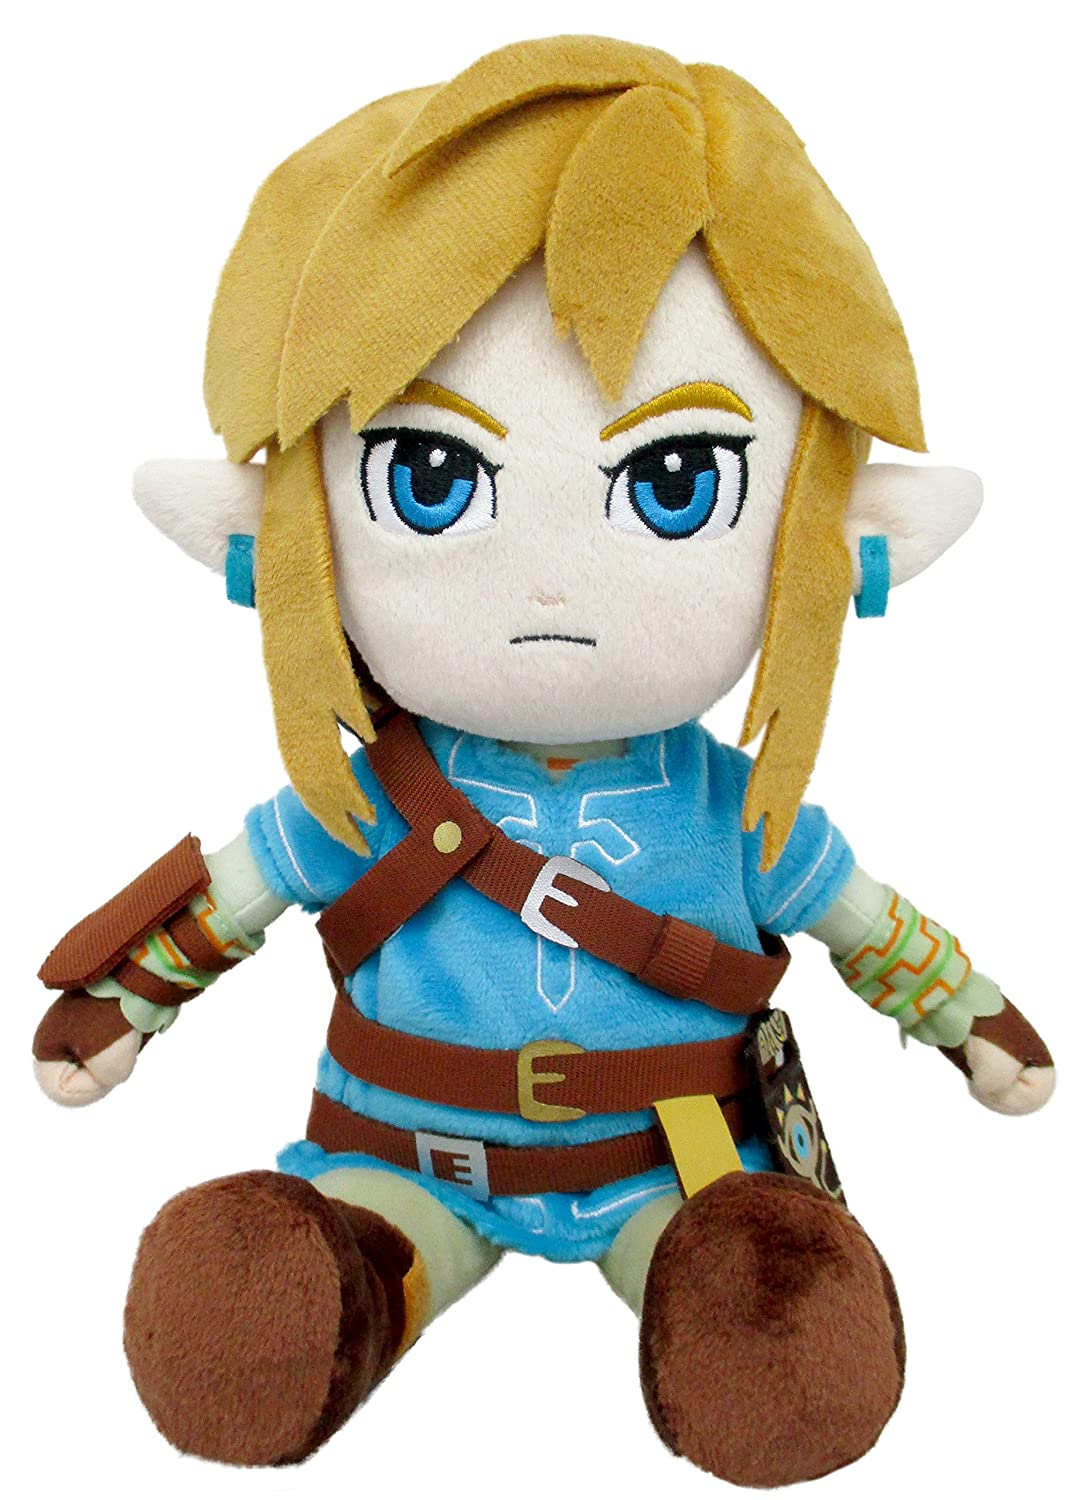 The Legend of Zelda Breath Of The Wild ZP01 BOTW Link (S) Peluche Plush 20cm [Japan Import]: Amazon.es: Juguetes y juegos